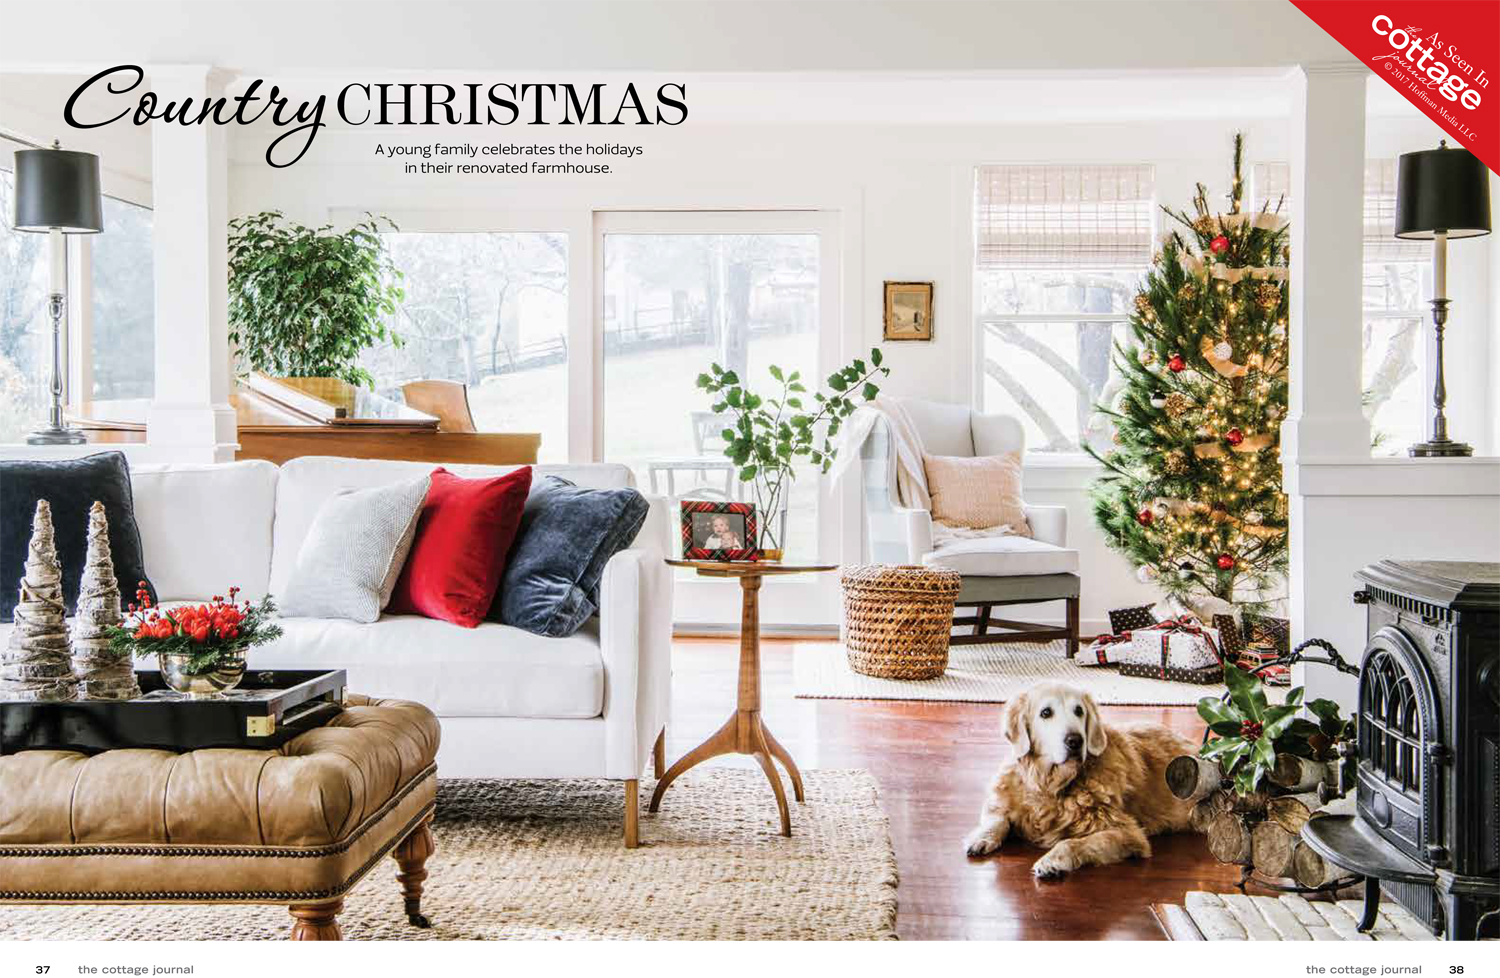 CottageJournal_Christmas_PG1.jpg